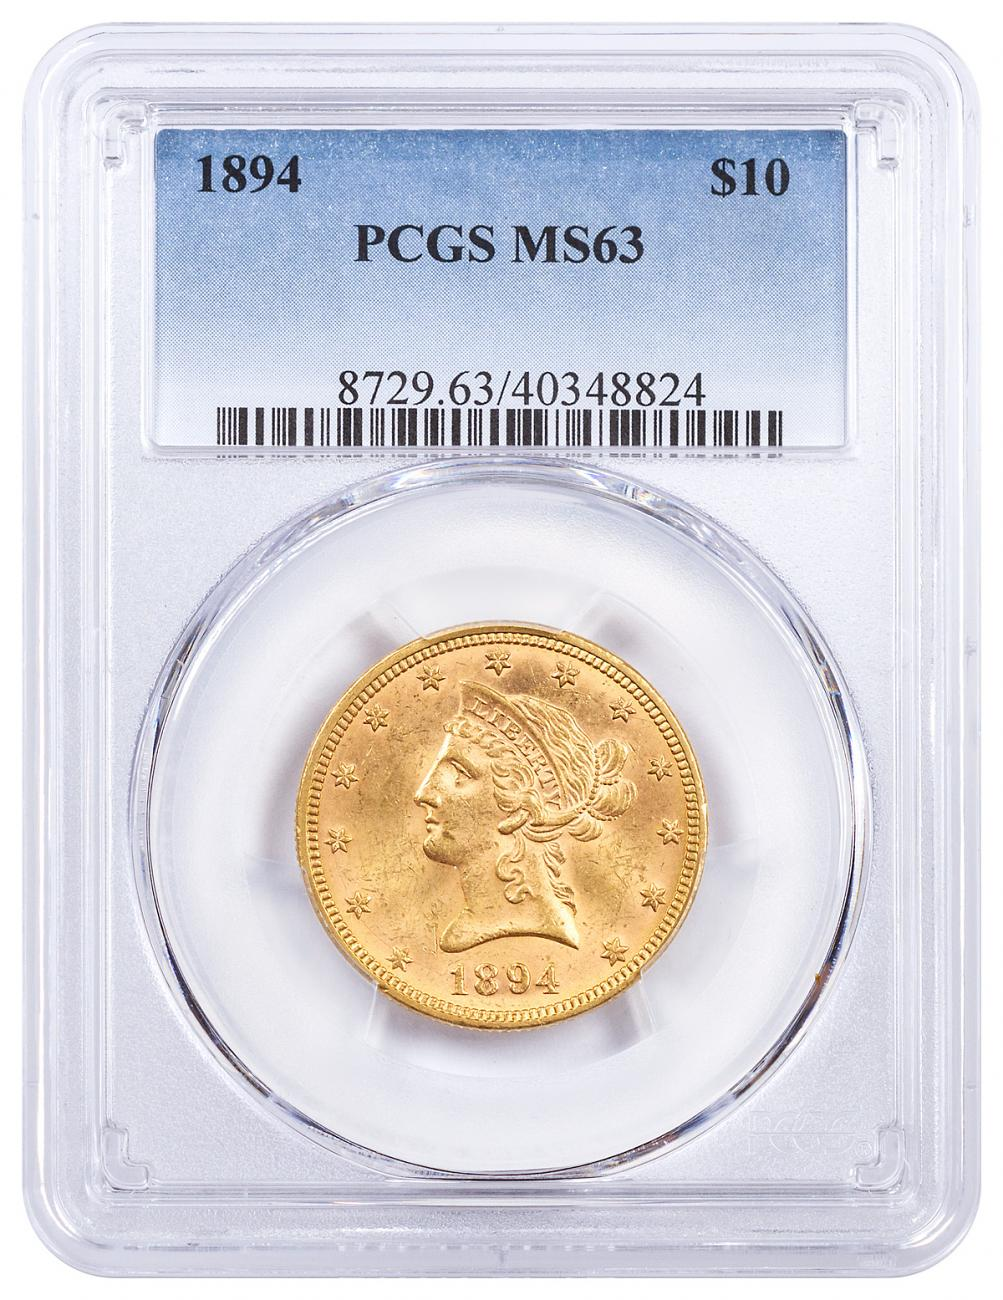 1894 Liberty Head $10 Gold Eagle PCGS MS63